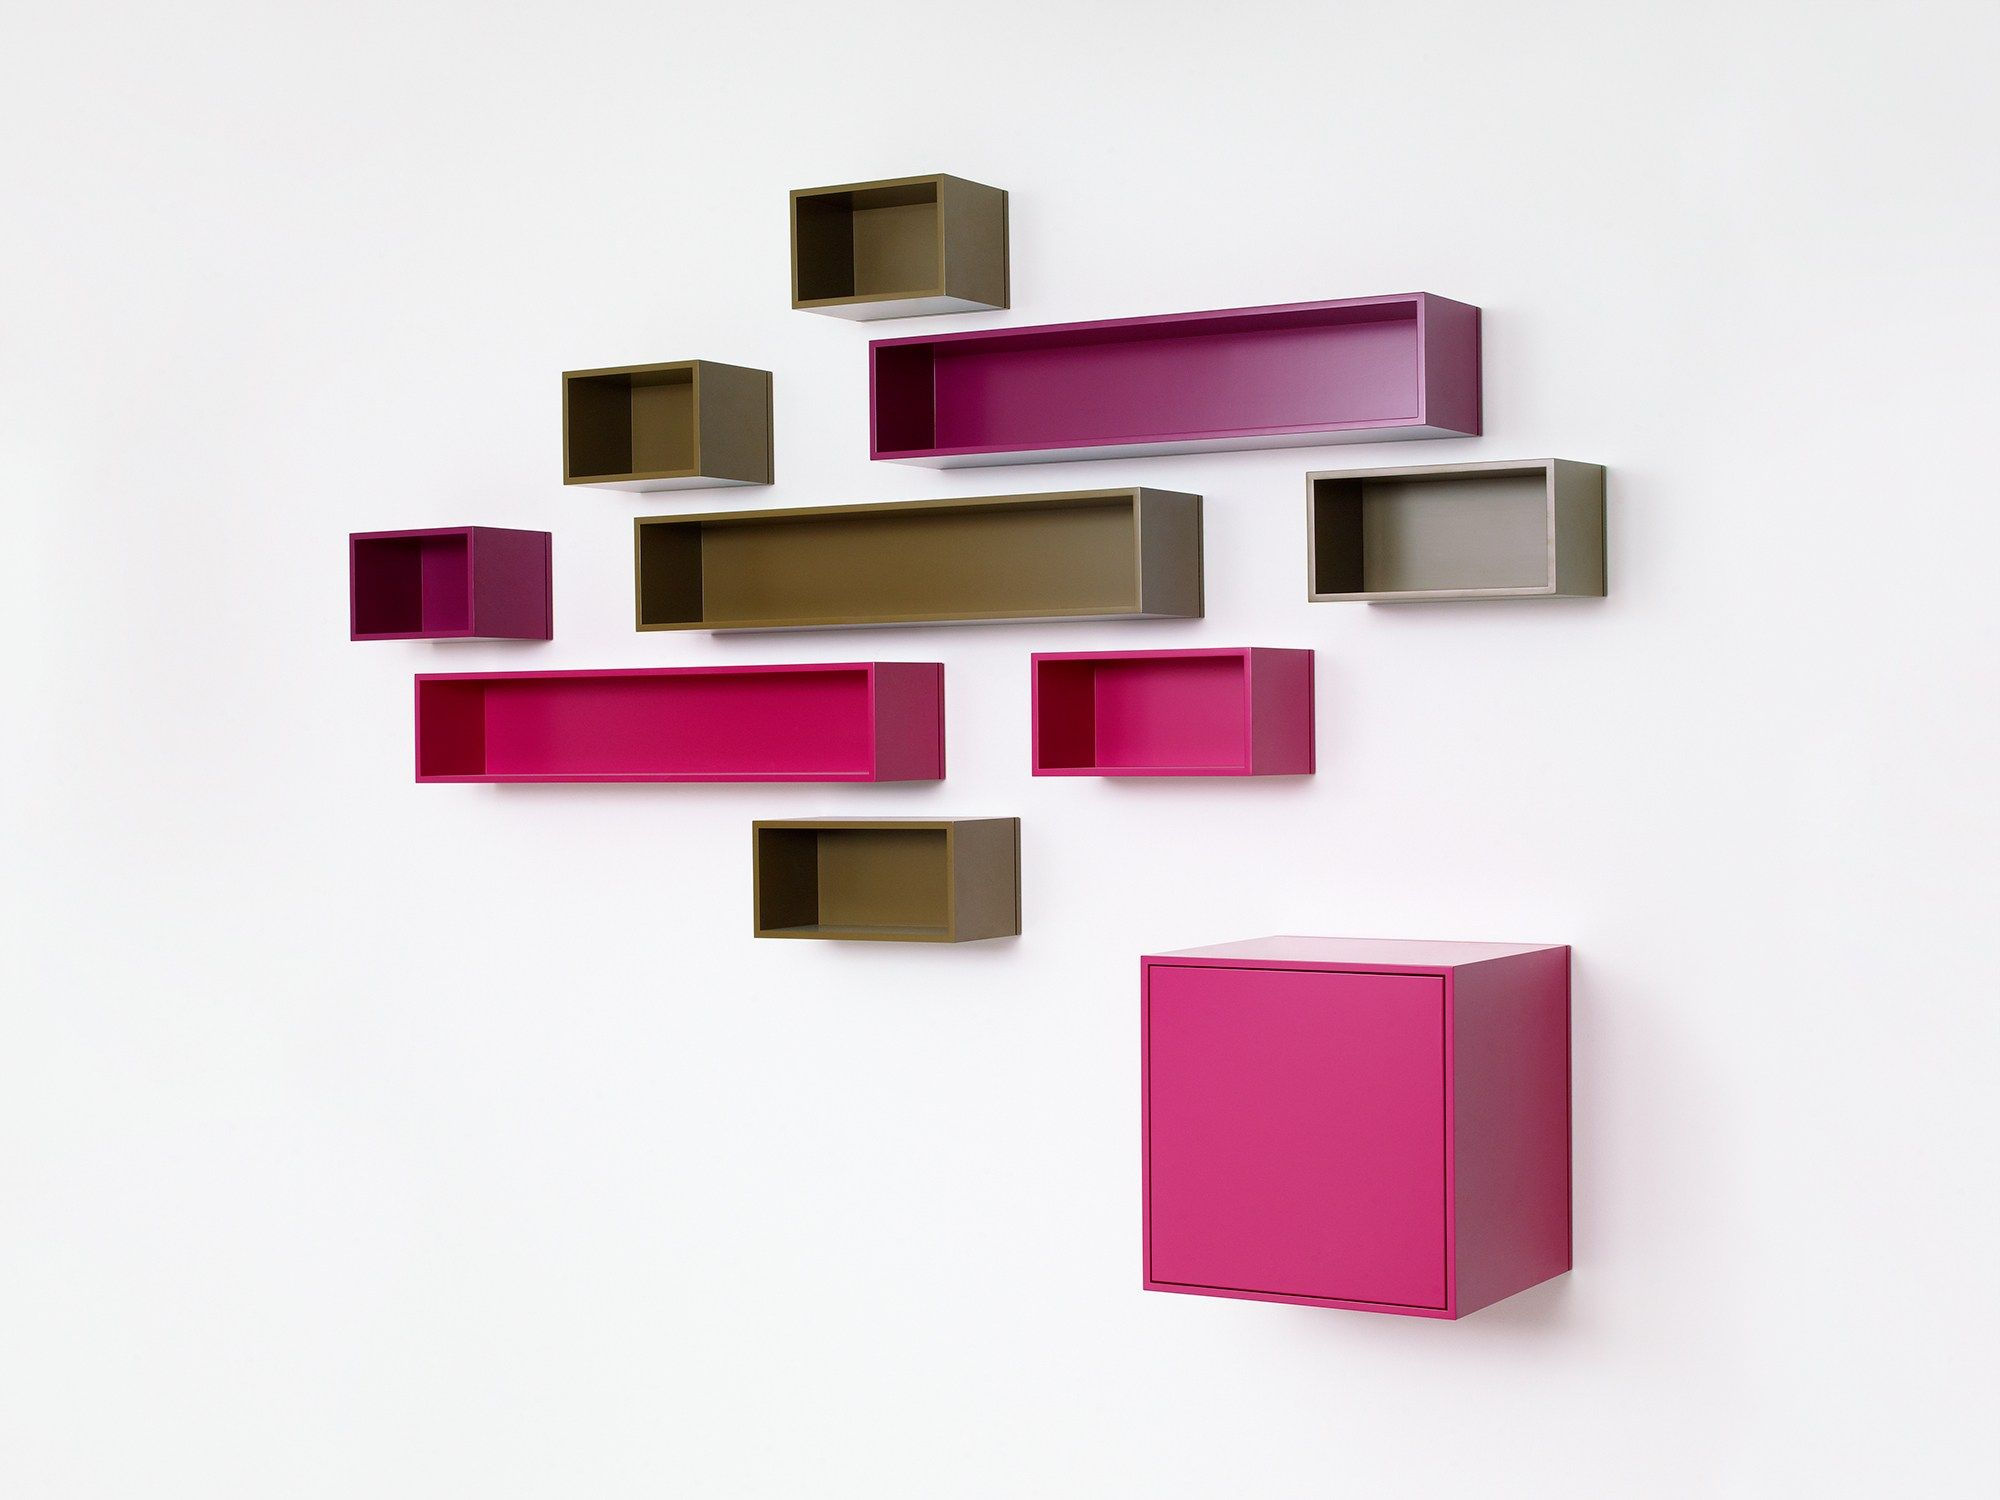 Wall mounted modular bookcase by Cubit by Mymito design Cubit